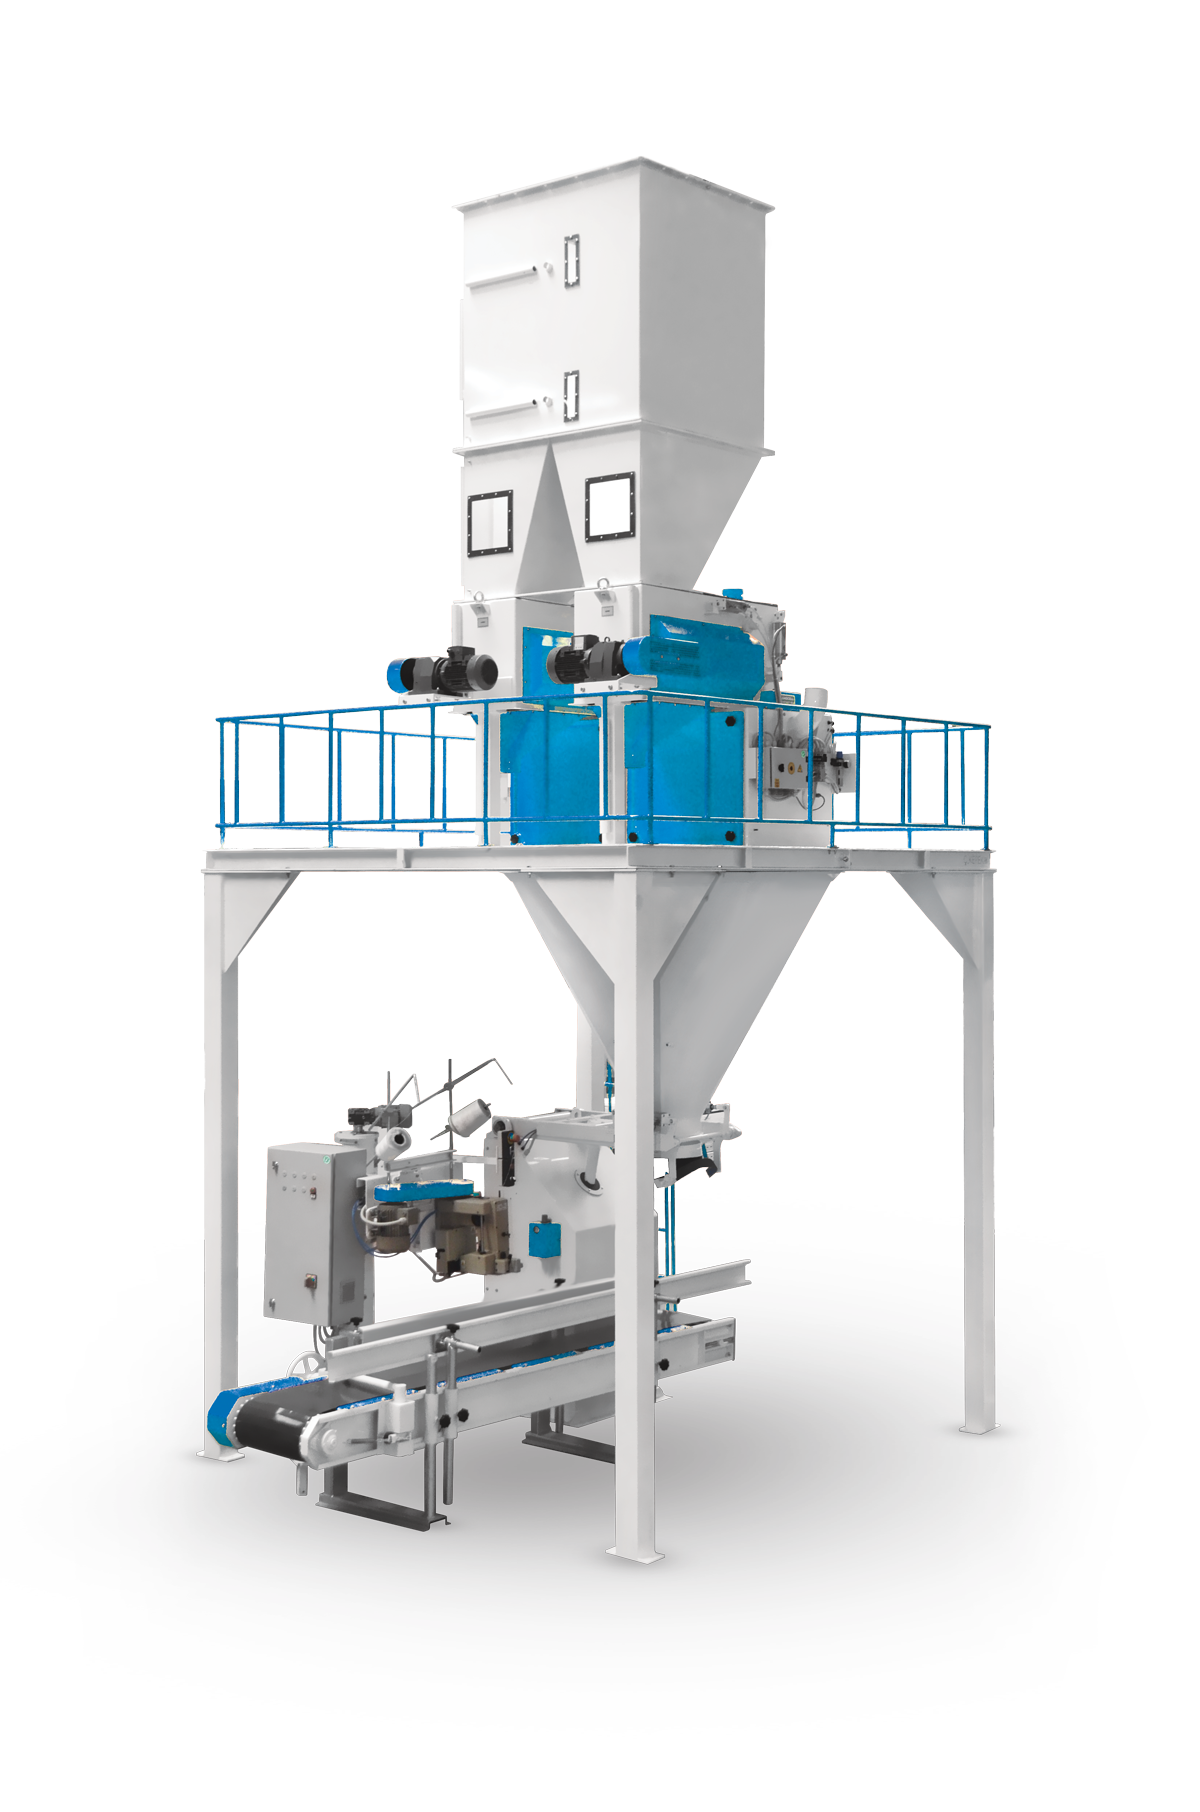 Flour Bagging Machine System With Single Weigh Hopper & Single Station 5/10 Kg6